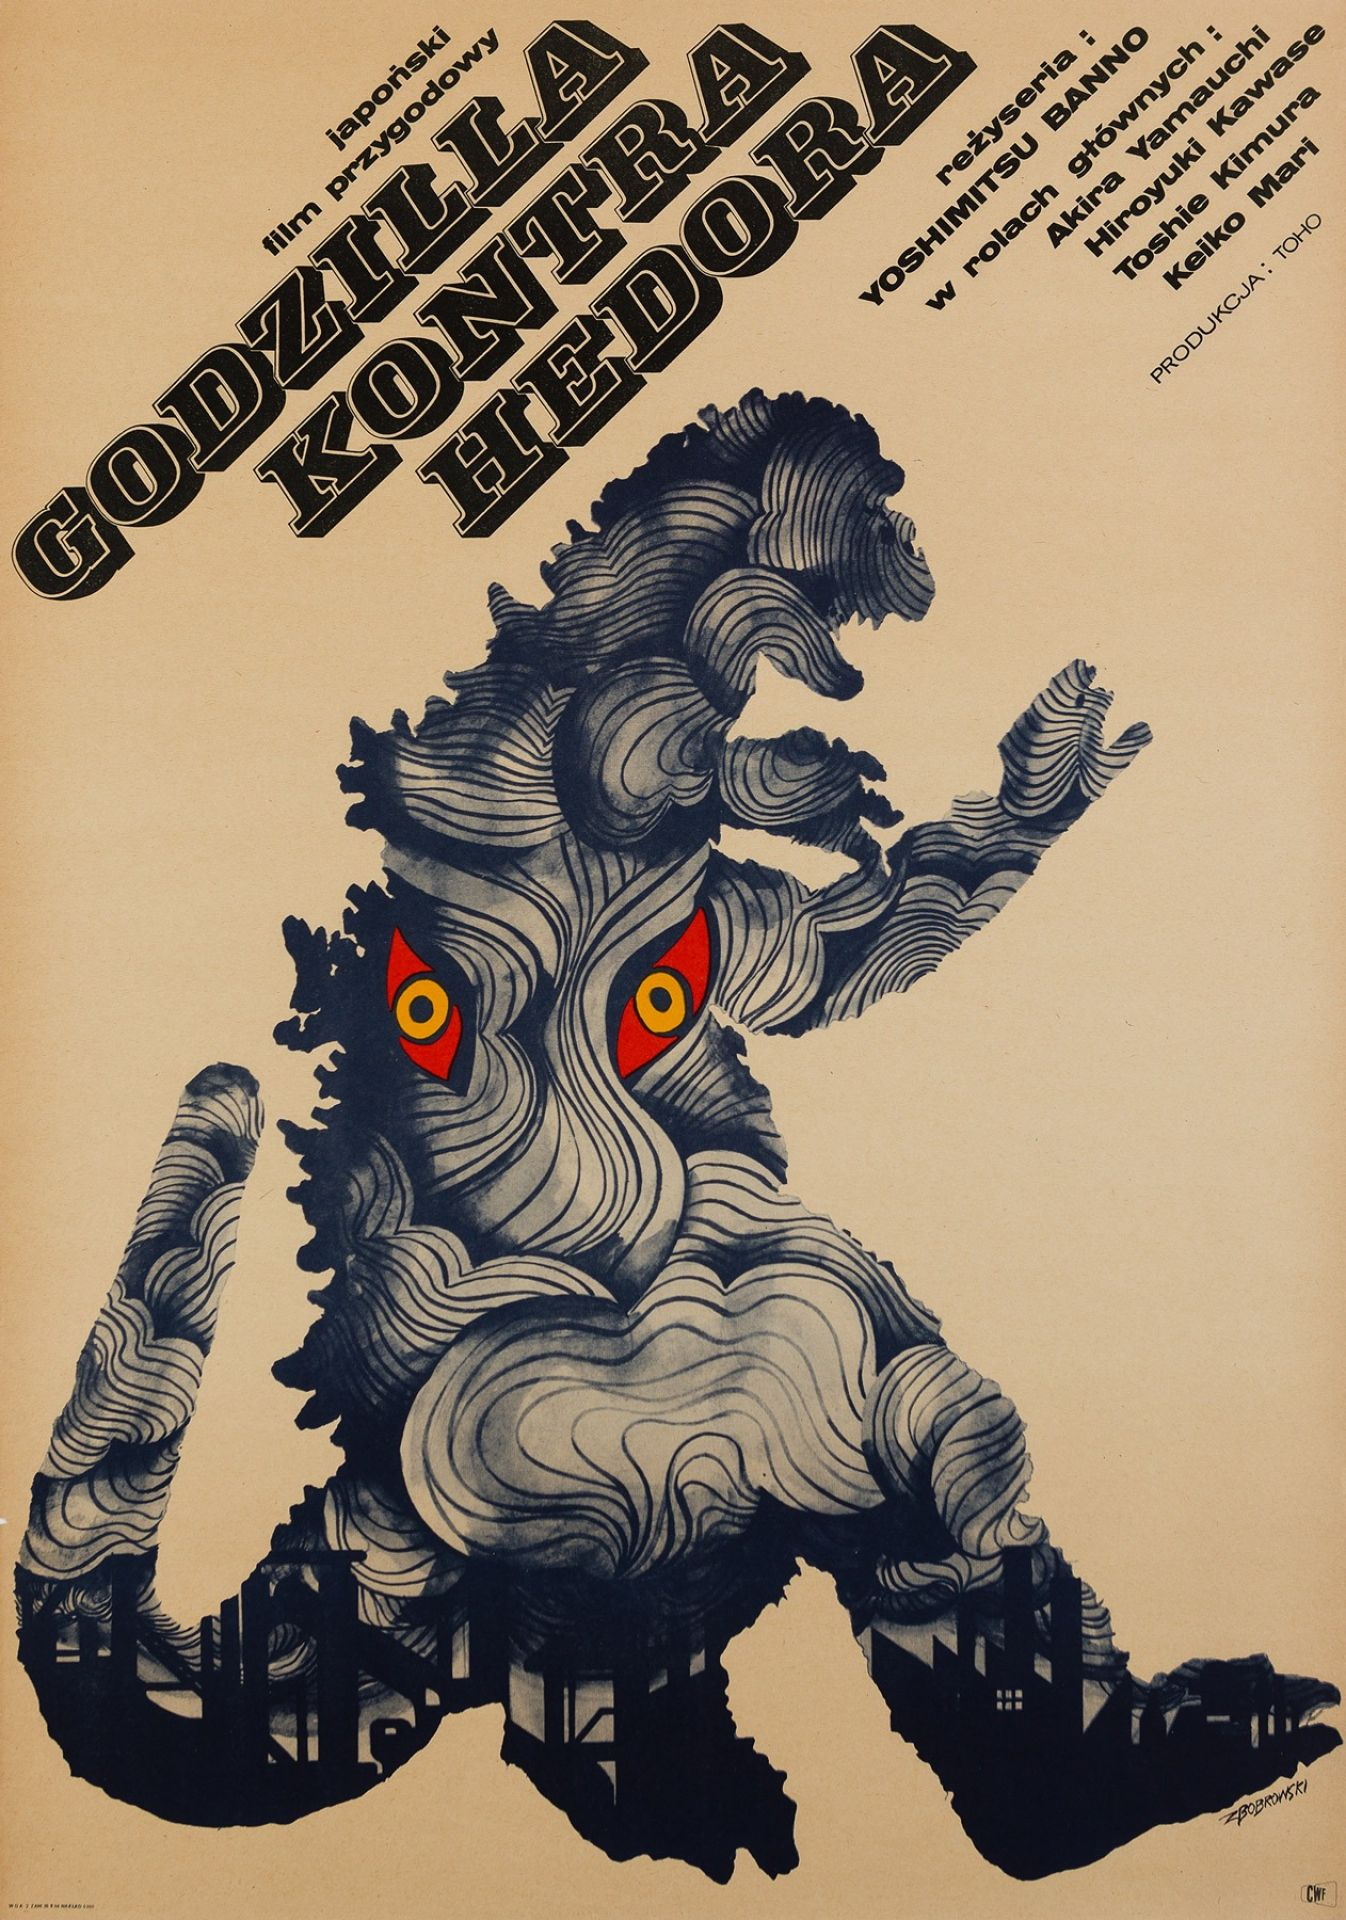 Original Godzilla vs. Hedorah 1973 Polish Film Movie Poster, Zygmunt Bobrowski